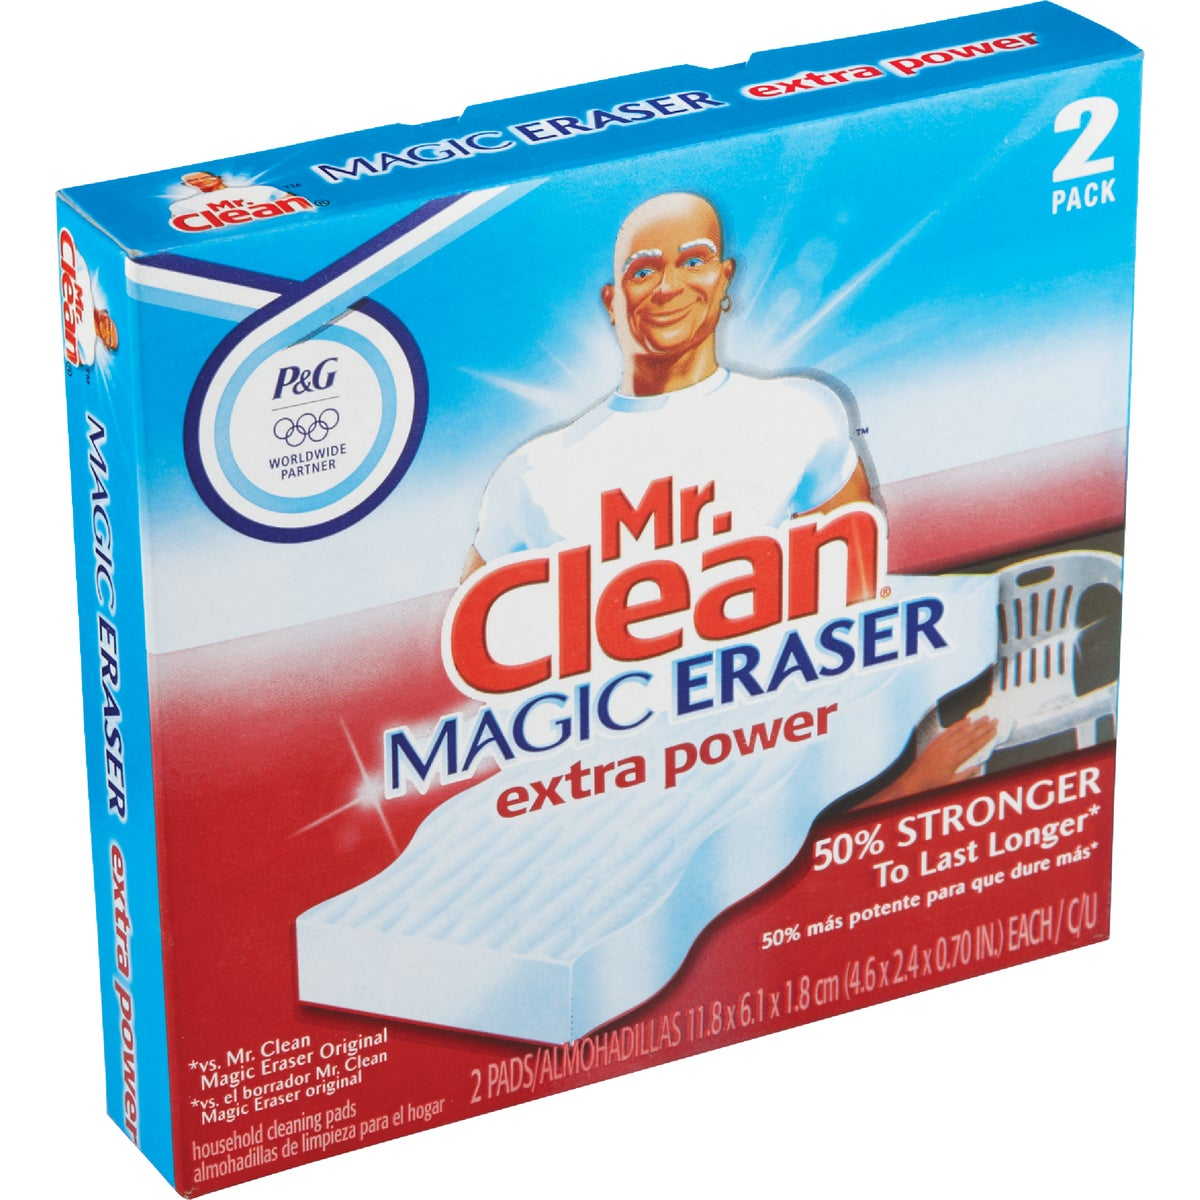 Mr. Clean Magic Eraser with Extra Power